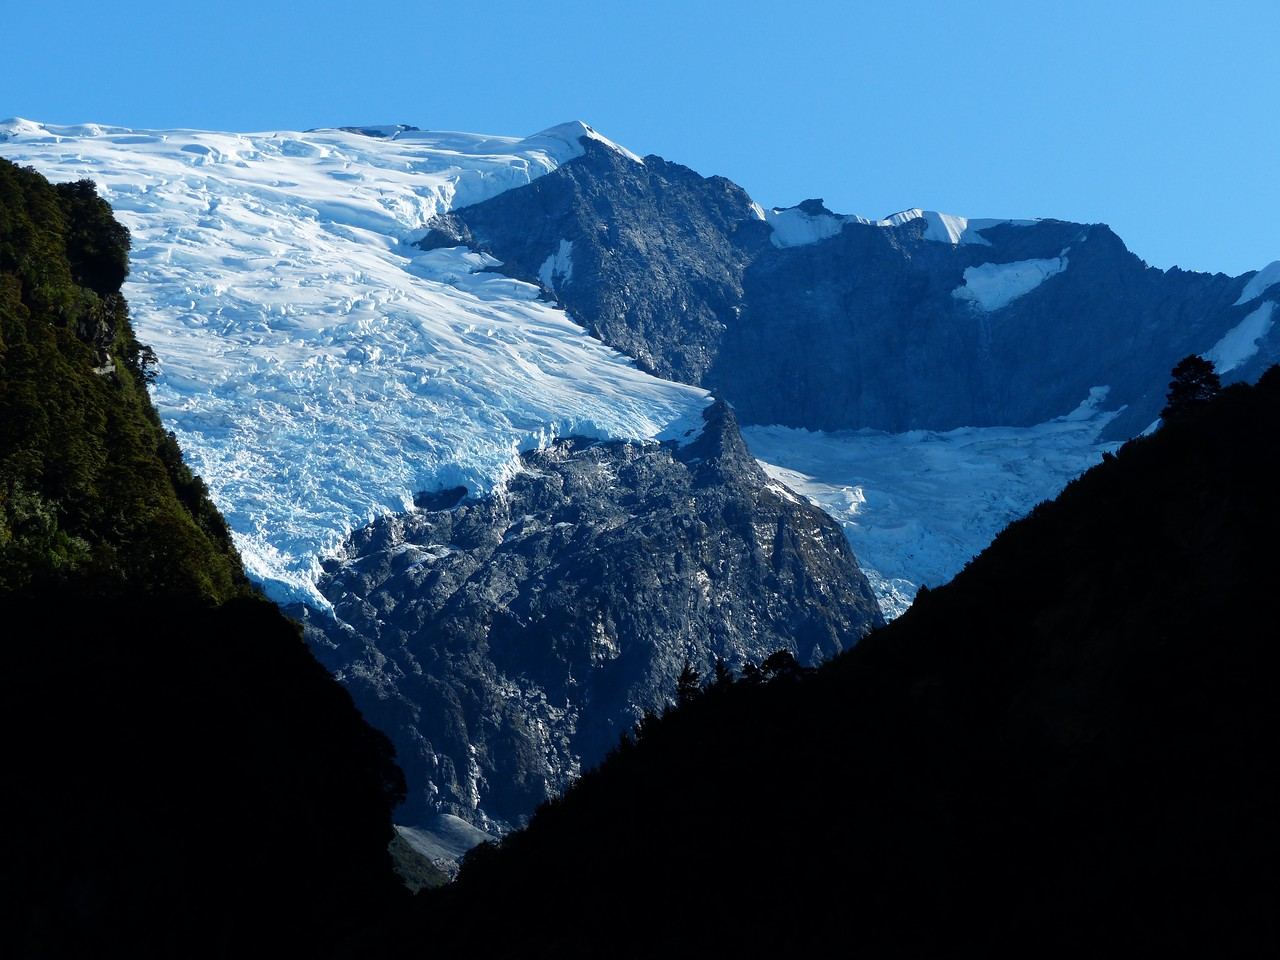 Mt. Aspiring backpack -  We had great views of Rob Roy Glacier but didn't have time to do the side hike to get up close.